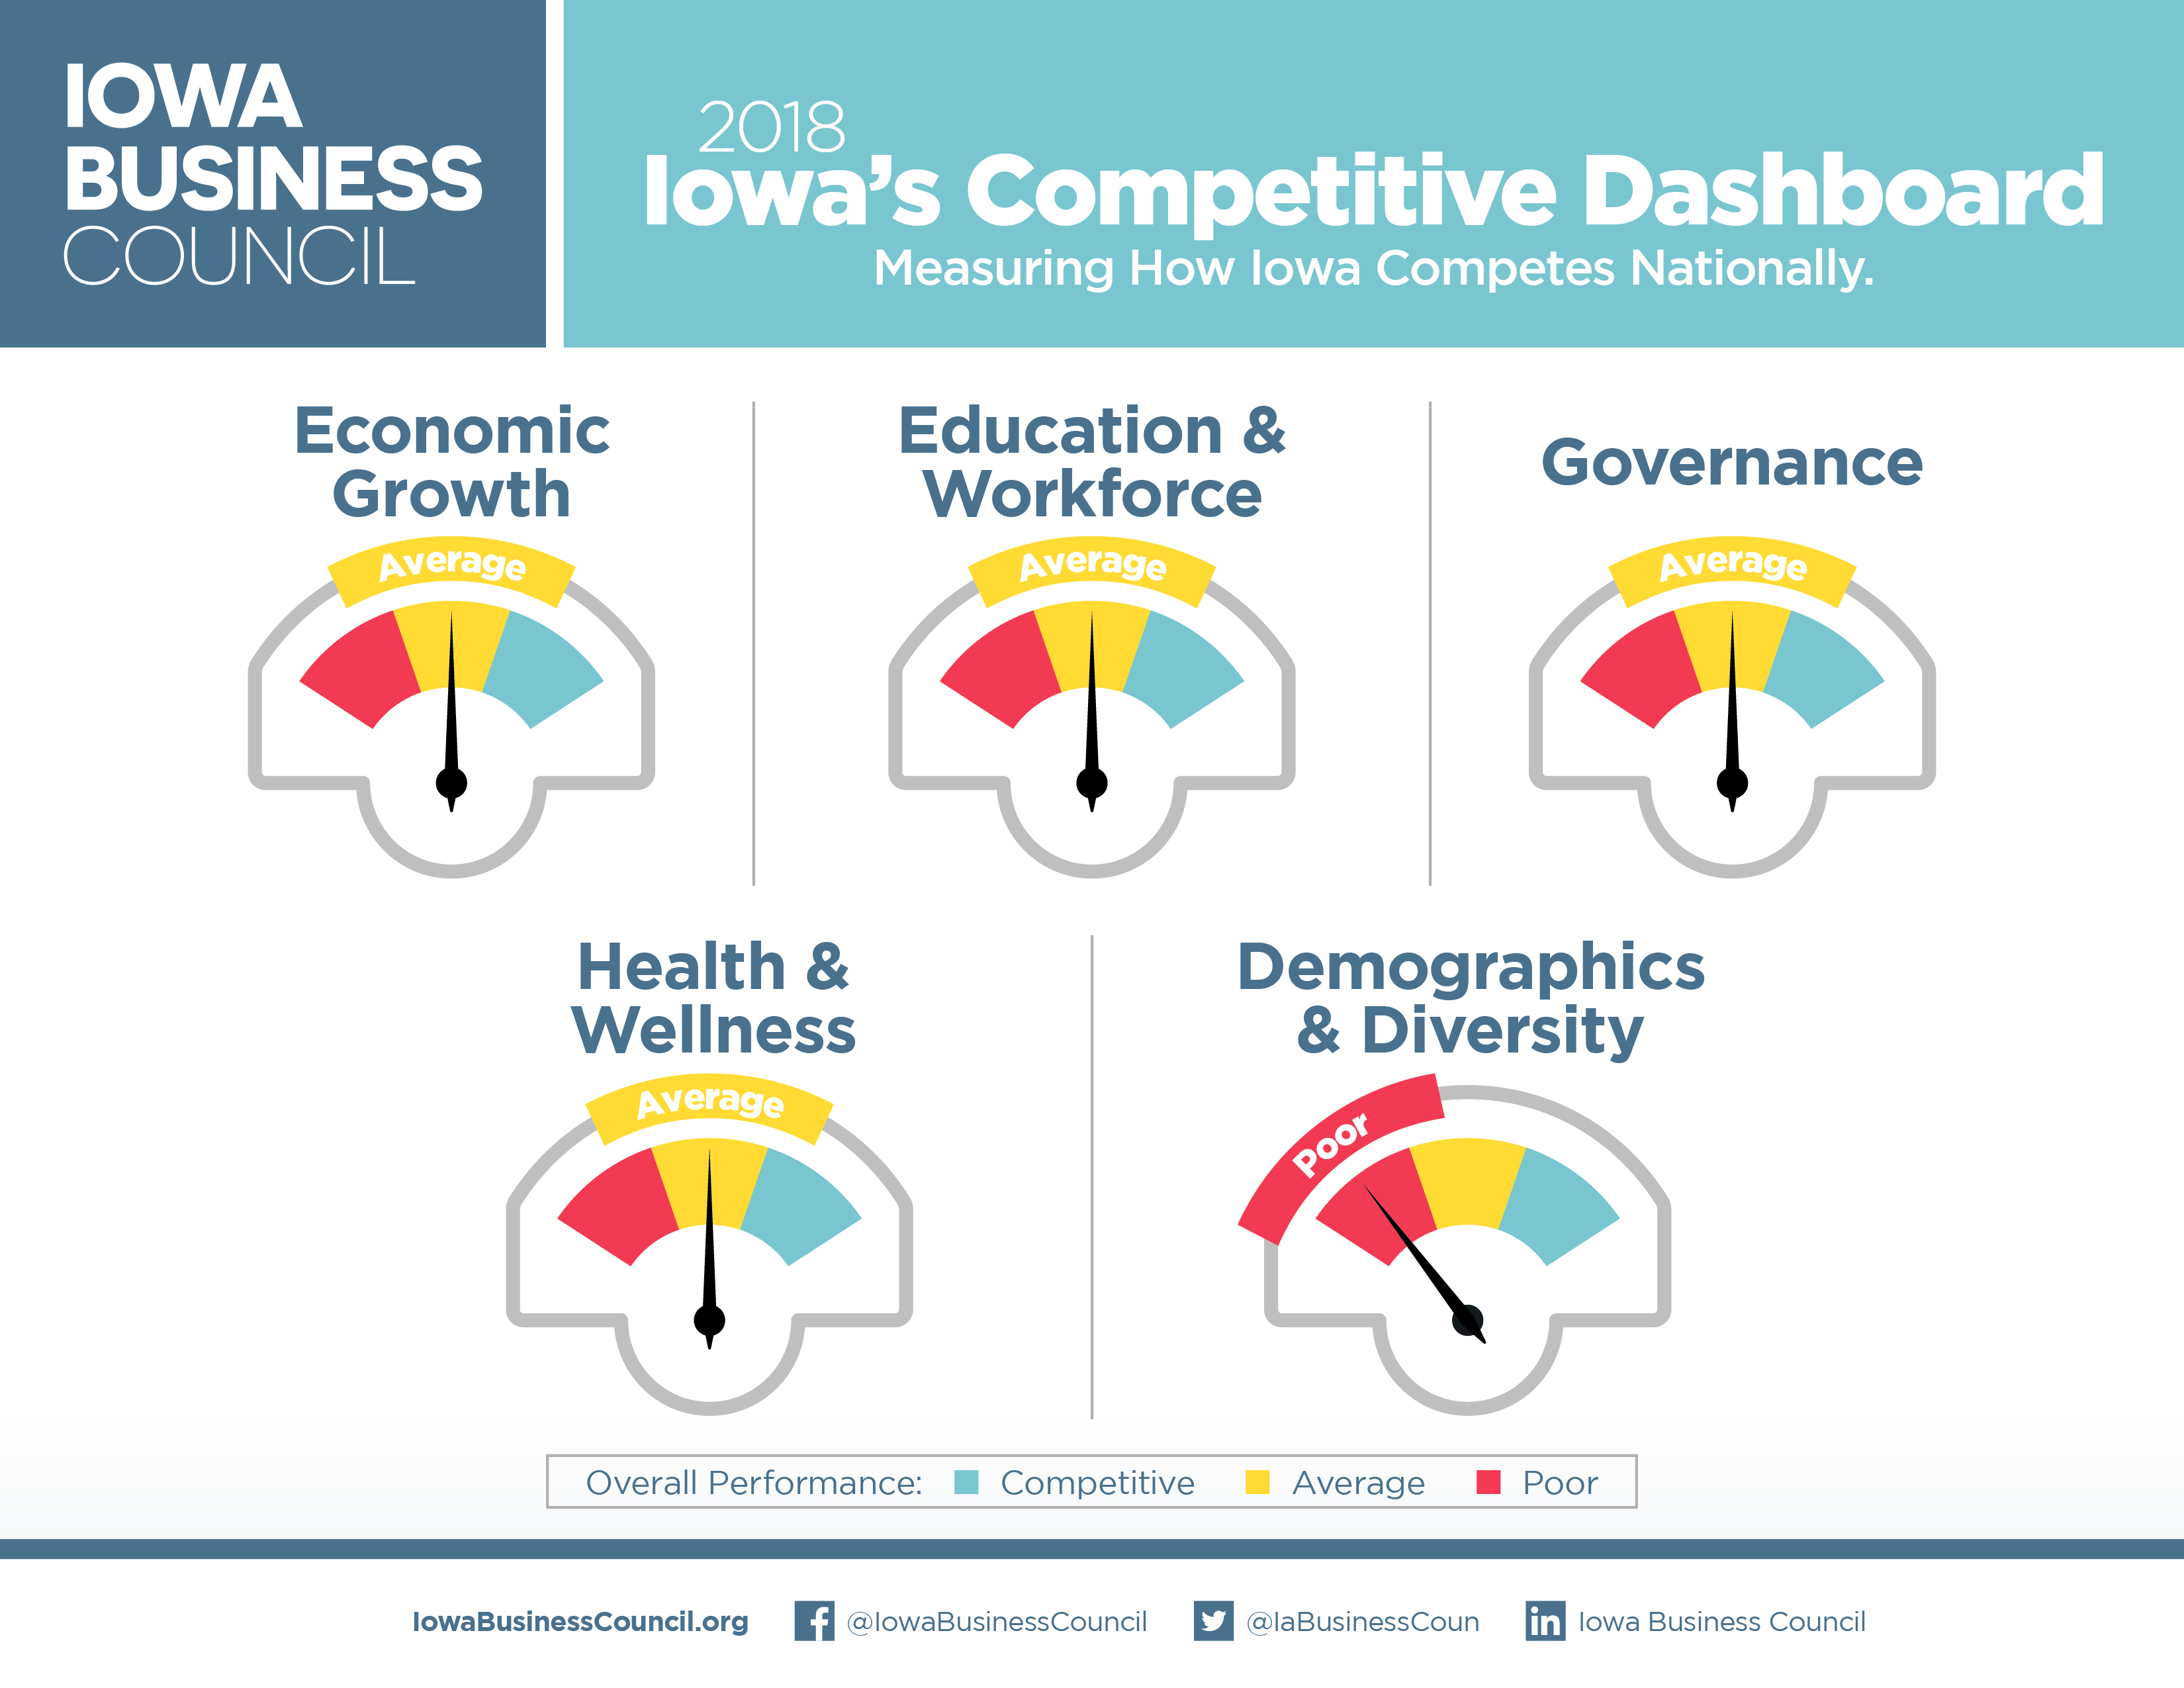 Iowa's Competitive Dashboard